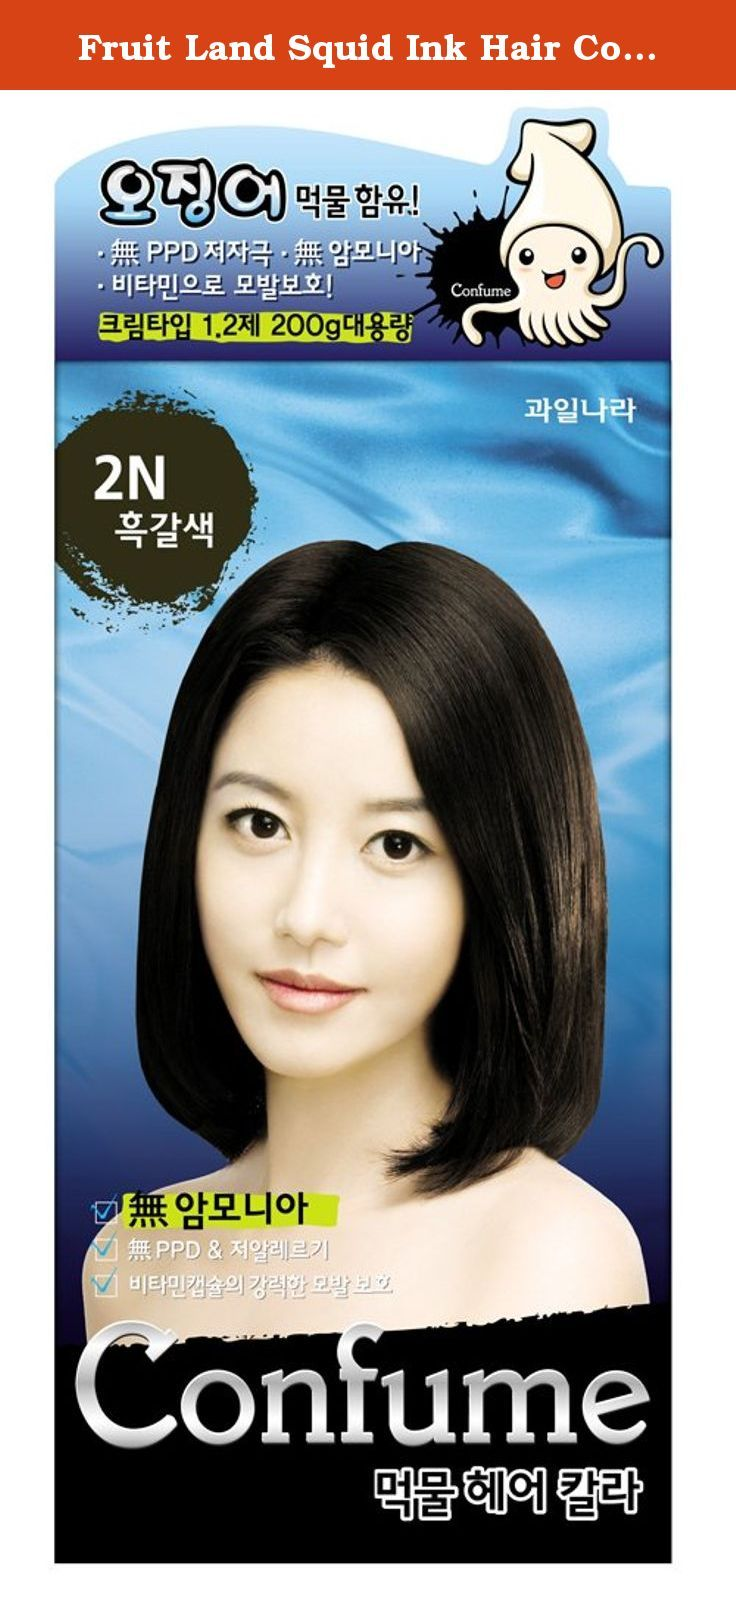 Fruit Land Squid Ink Hair Color S2N(Black Brown). *Healthy and glossy hair with natural squid ink:The product contains a molecule structure very close to the melanin (Eumelanin) found in hair, and so it causes less damage to the hair or stimulation to the scalp compared to chemical hair dyes. With the excellent 'Color Lock System' this effective dye offers clear color to gray hair after operation. Also, mucopolysacharide and taurine give softness and gloss to the hair. **Low allergy:no...